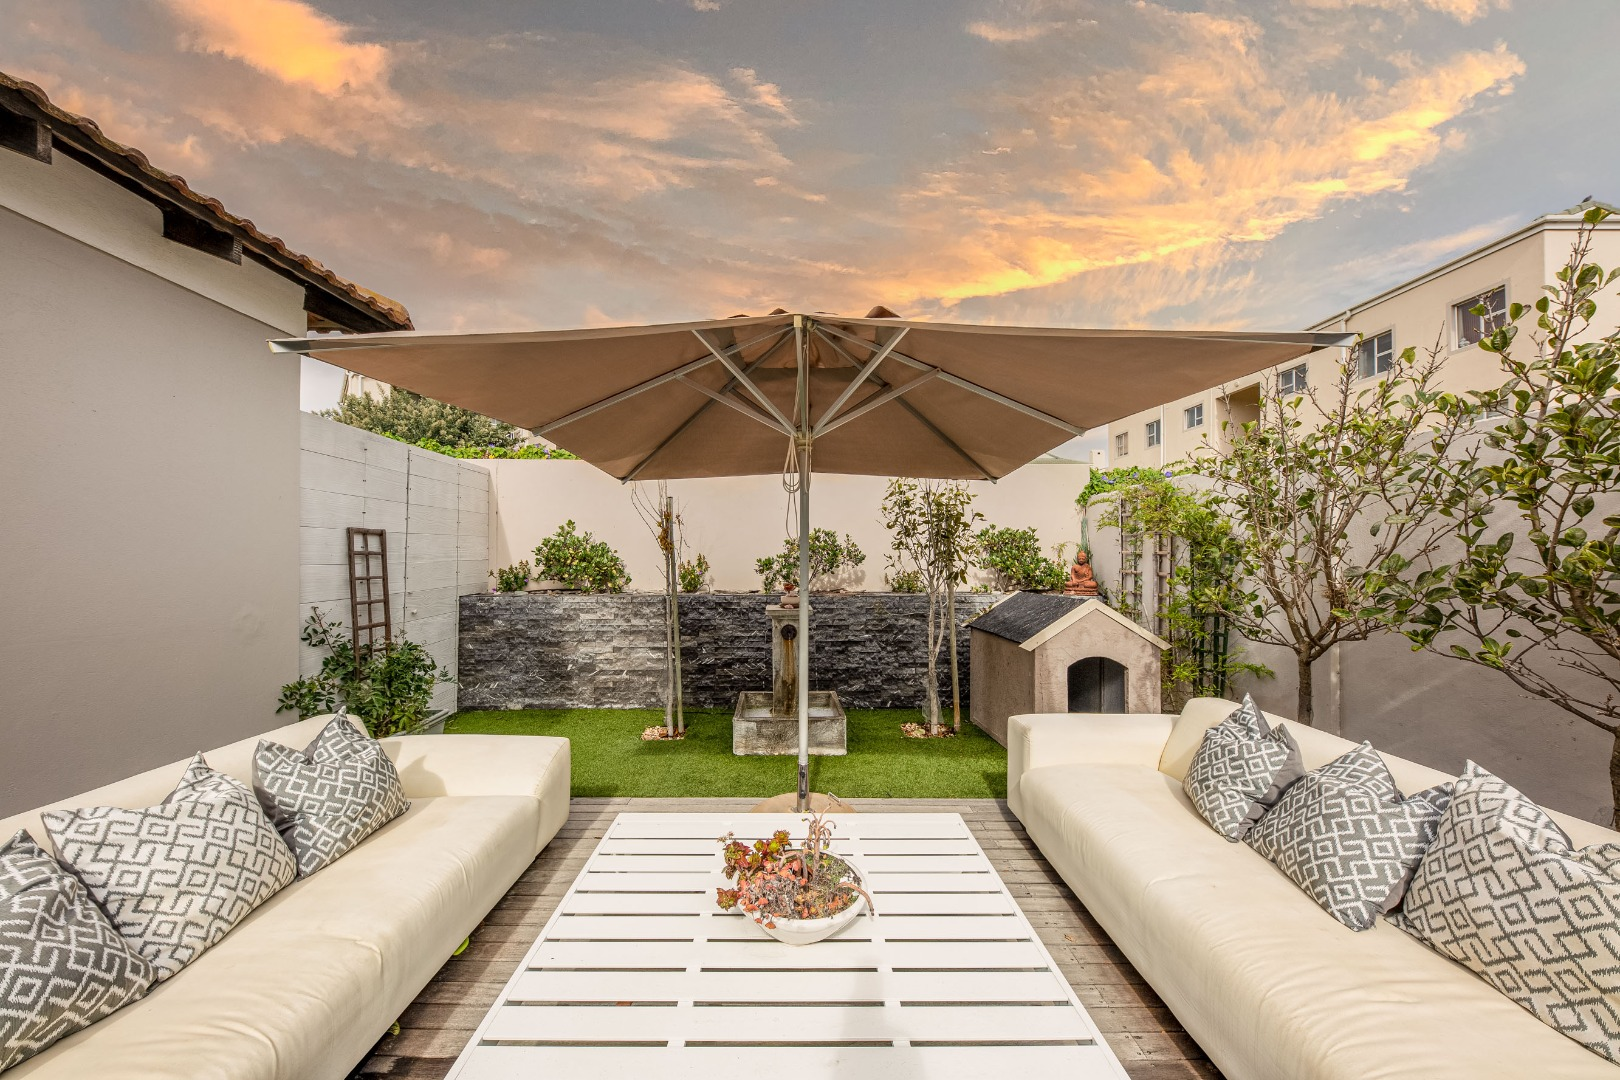 5 Bedroom House For Sale in Bloubergstrand